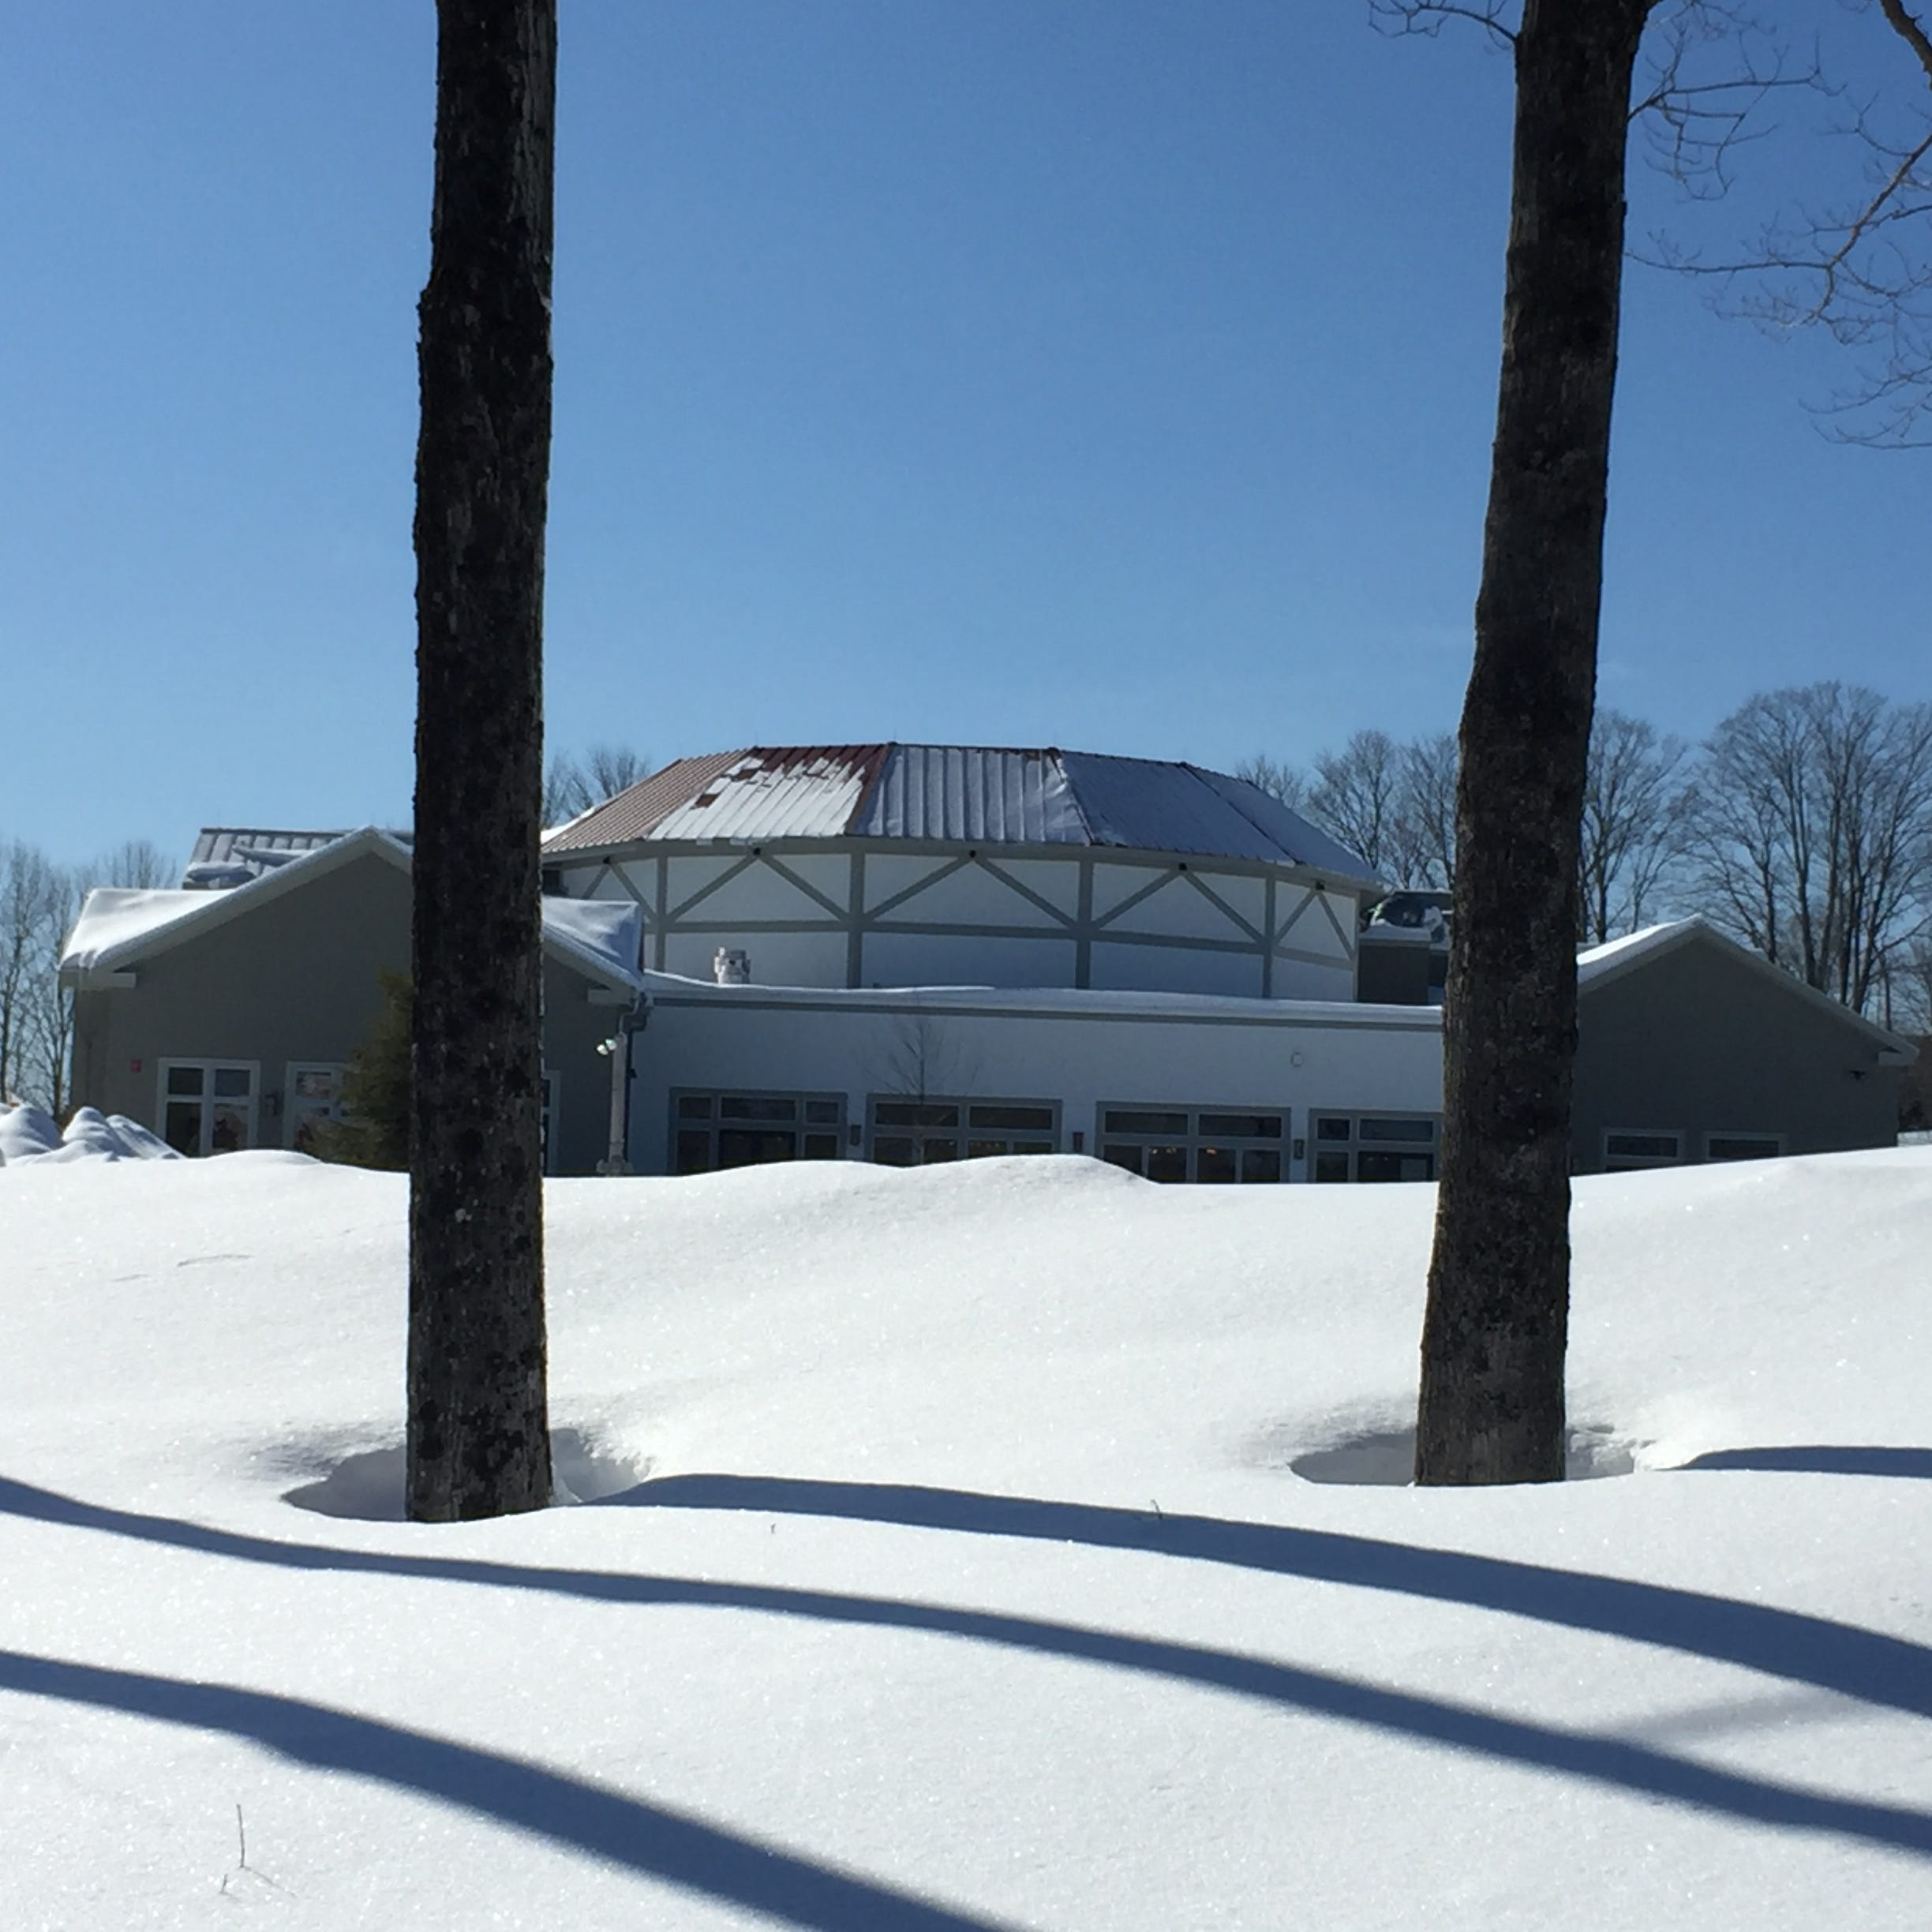 Can a 263-seat performing-arts venue survive in a remote Vermont town of 800?